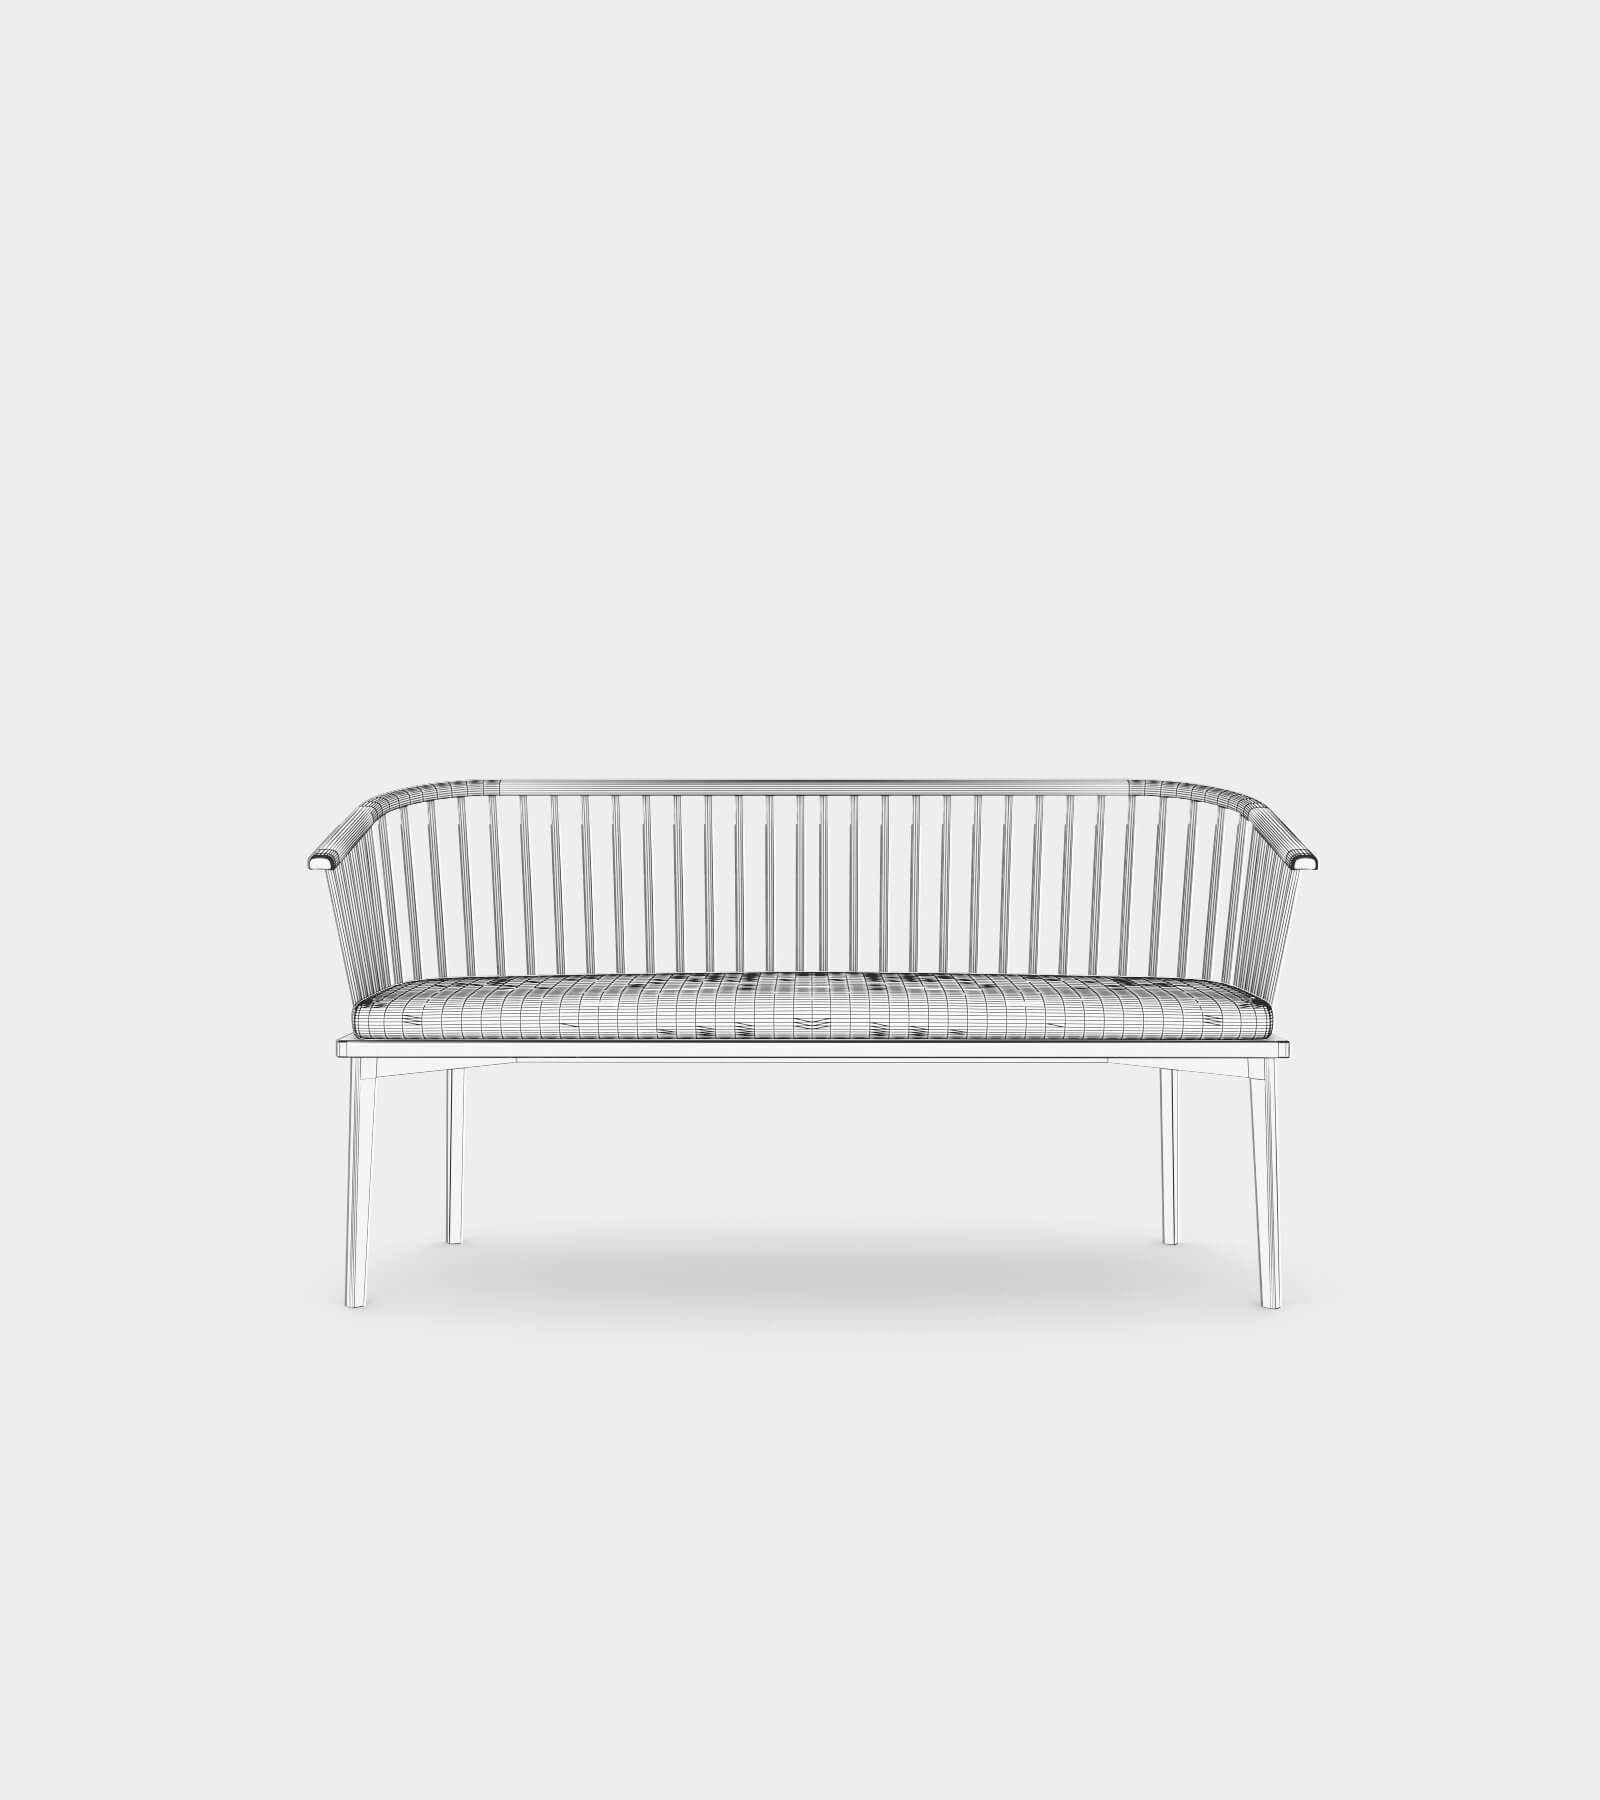 Classic wood bench with struts-wire-1 3D Model